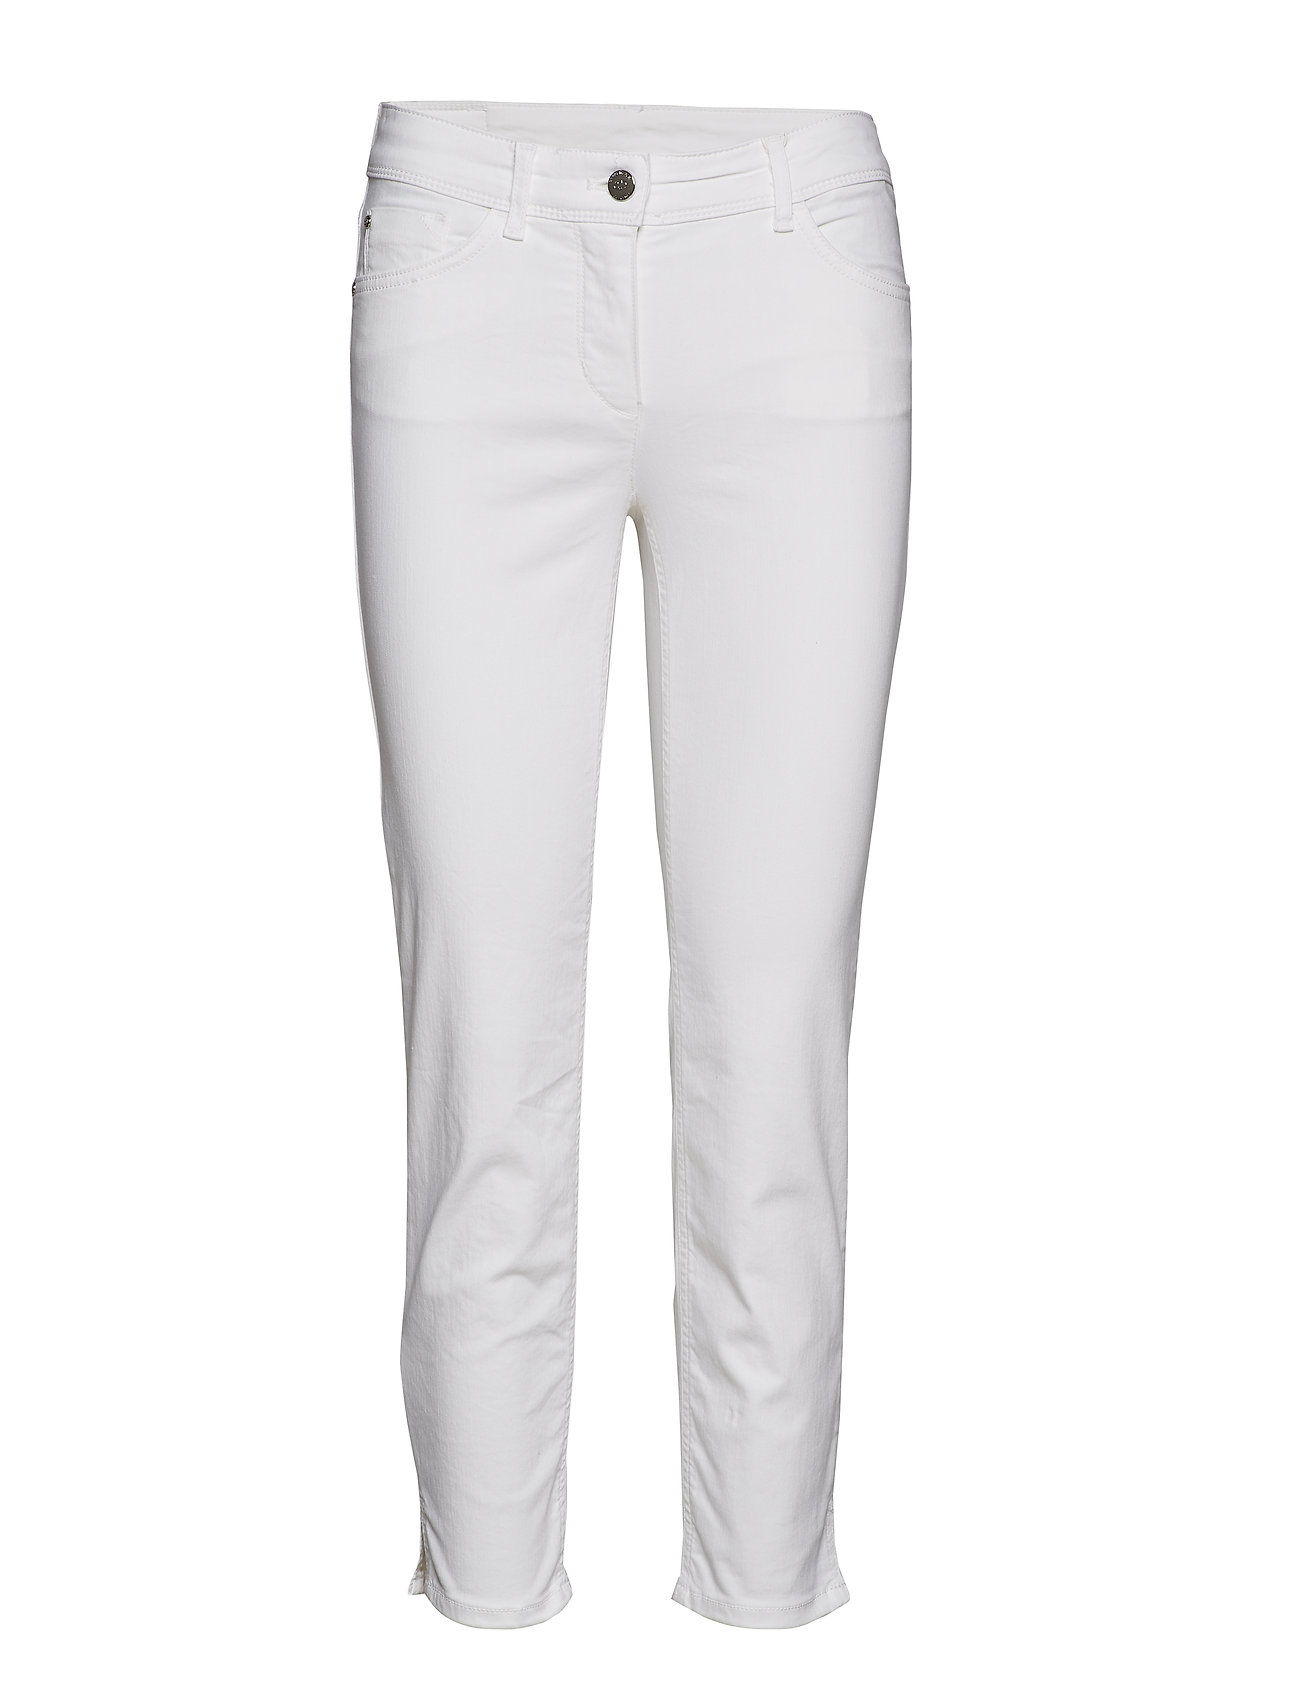 Gerry Weber CROP TROUSERS JEANS - OFF-WHITE